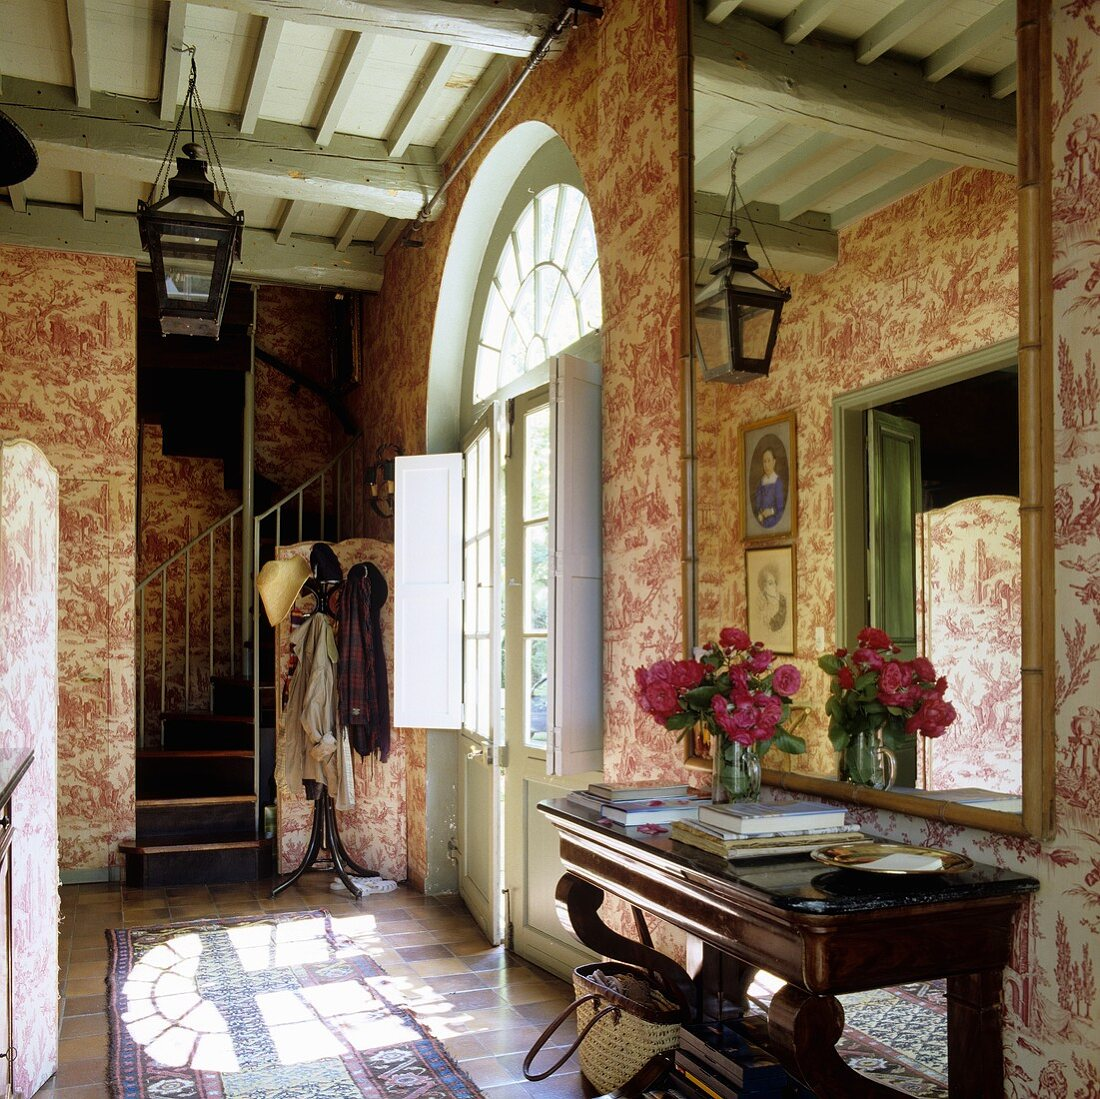 A hallway with patterned wallpaper on the wall and a large mirror over a wall table in a French country house